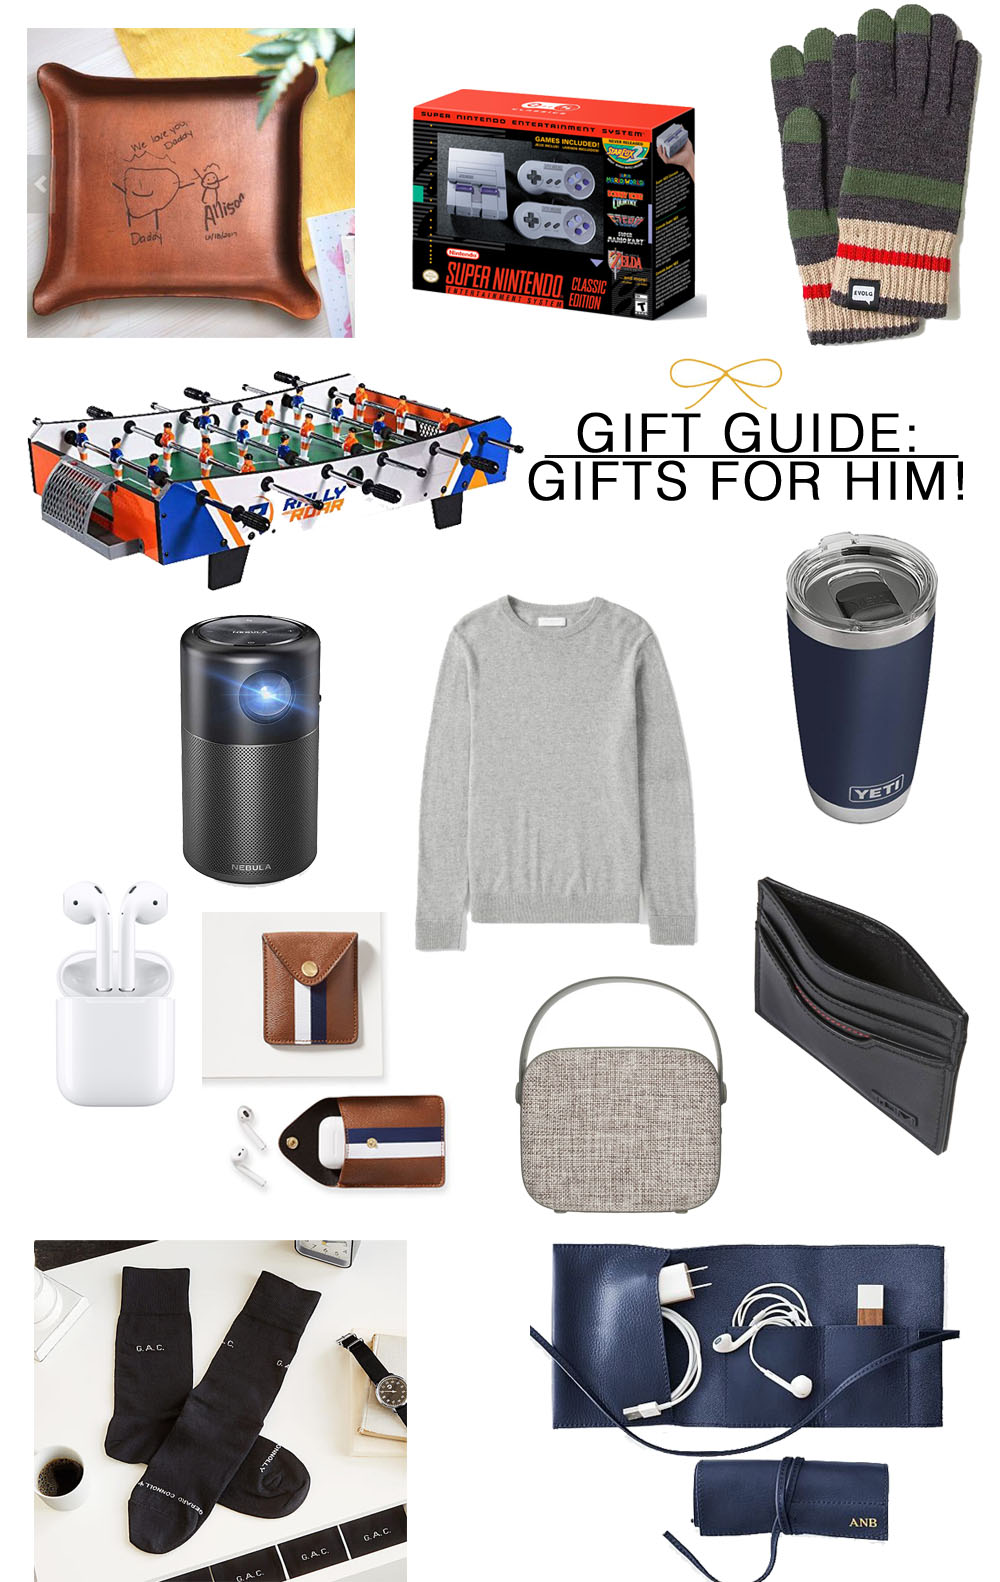 Best Gift Ideas for Him ... especially when you don't know what to get! #giftsforhim #giftguide #holiday